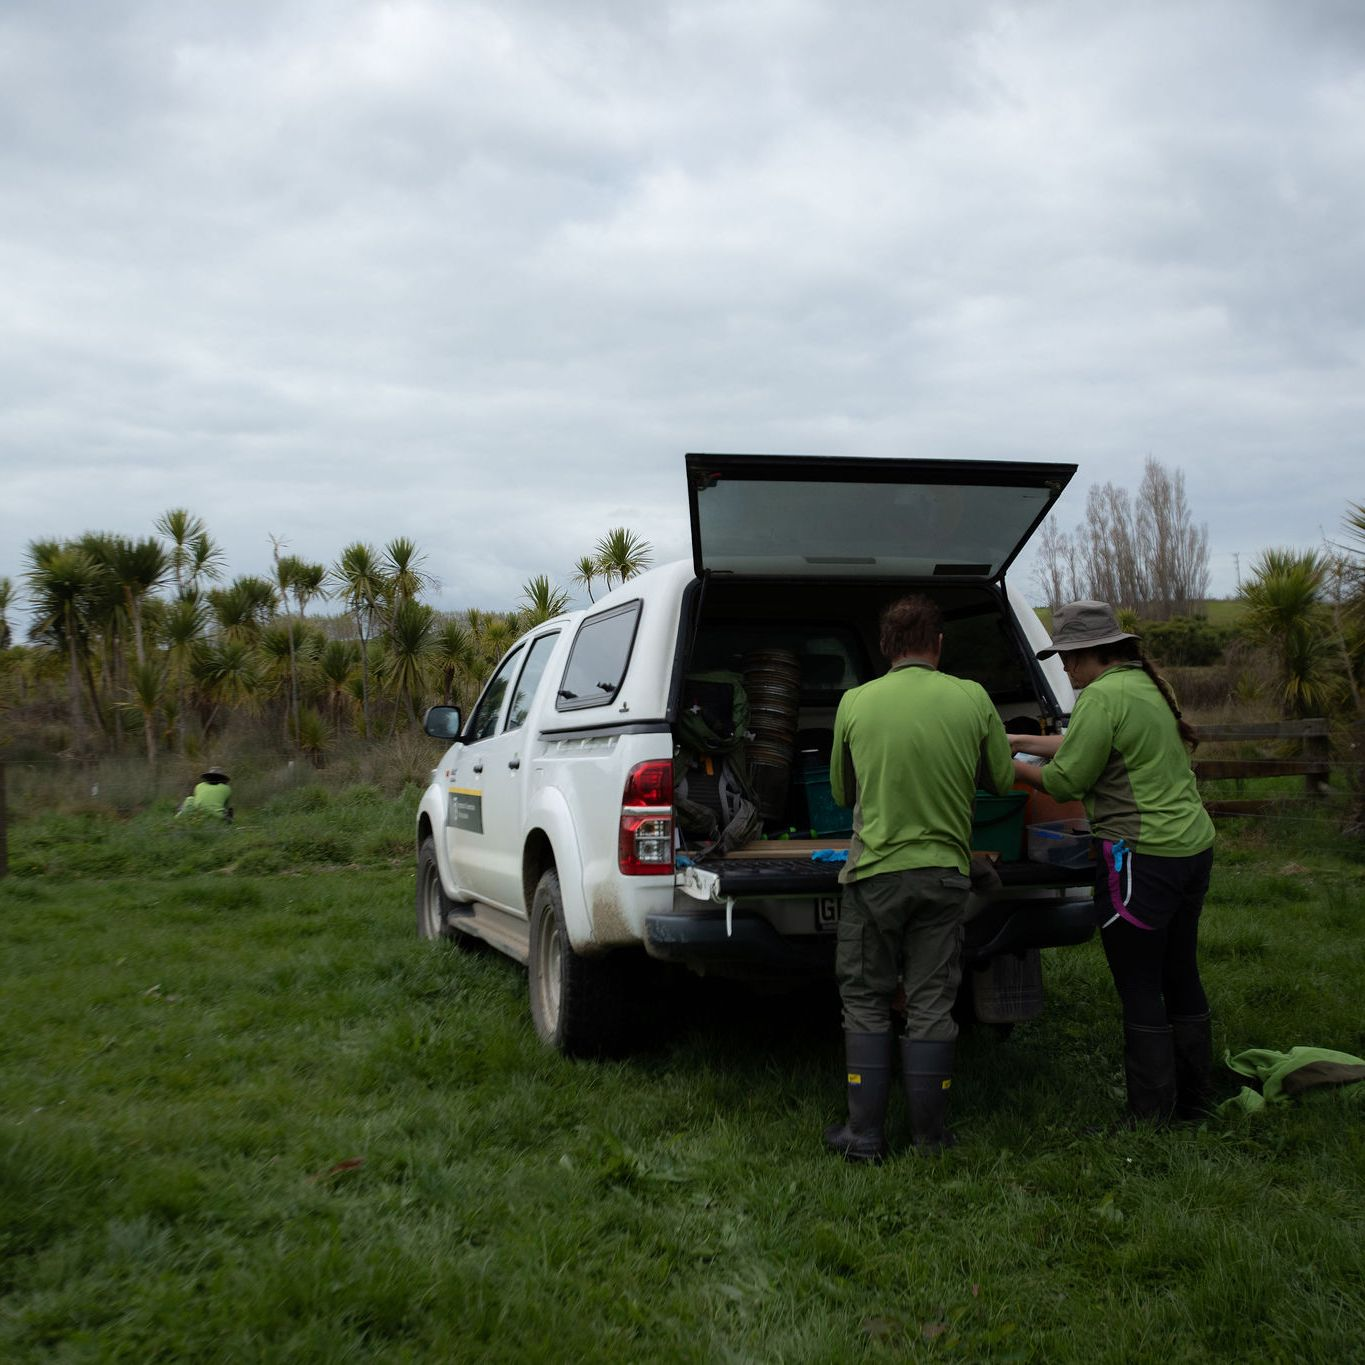 Rangers getting ready to search for black mudfish in a Waikato peat lake.